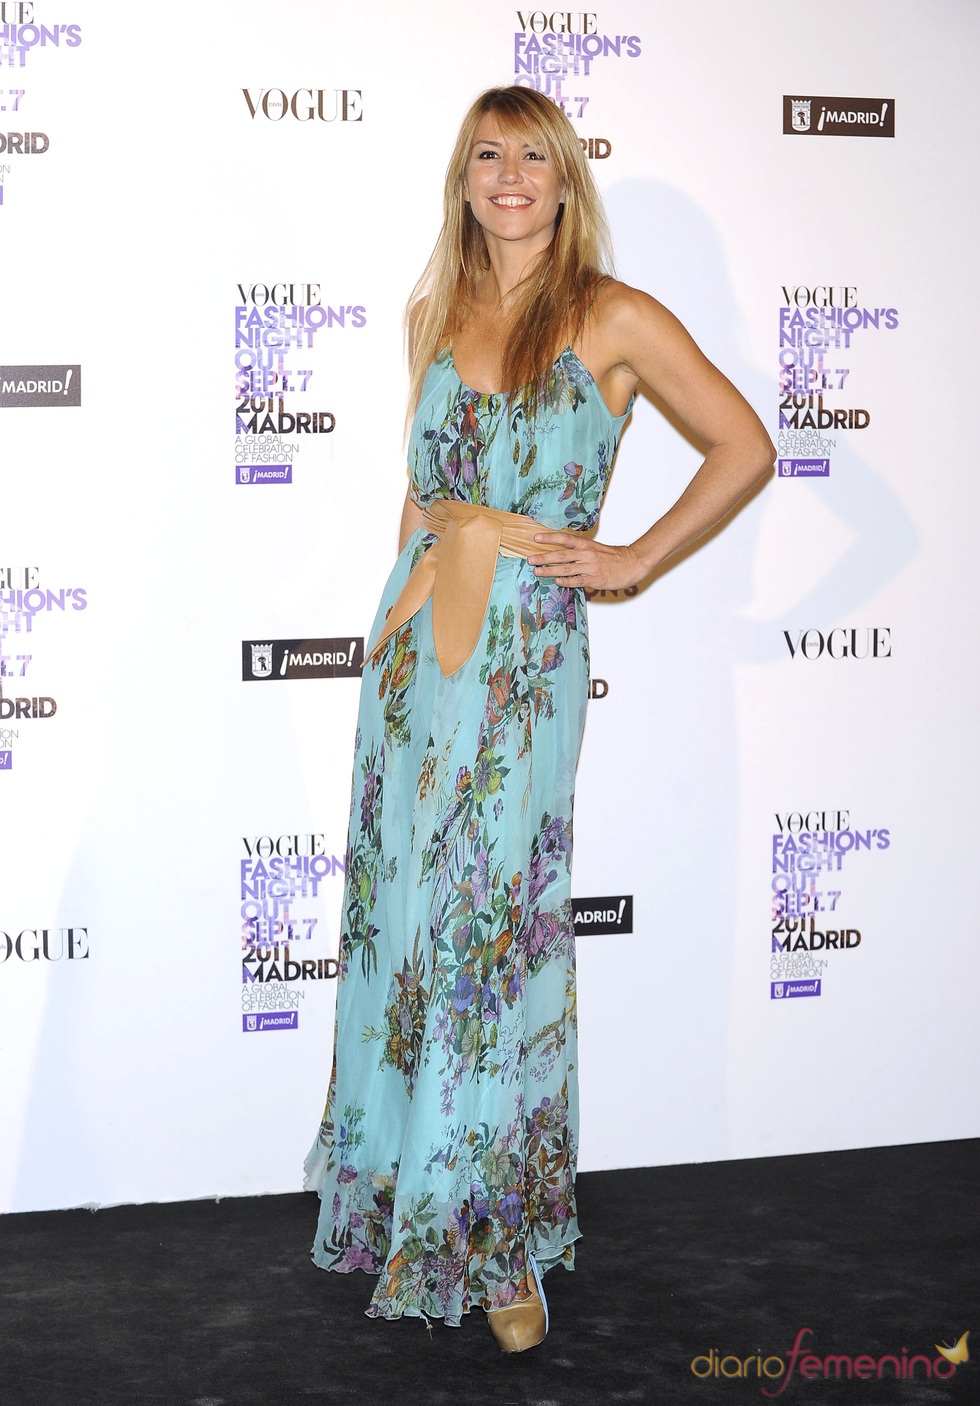 Raquel Meroño durante la Vogue Fashion Night Out Madrid 2011